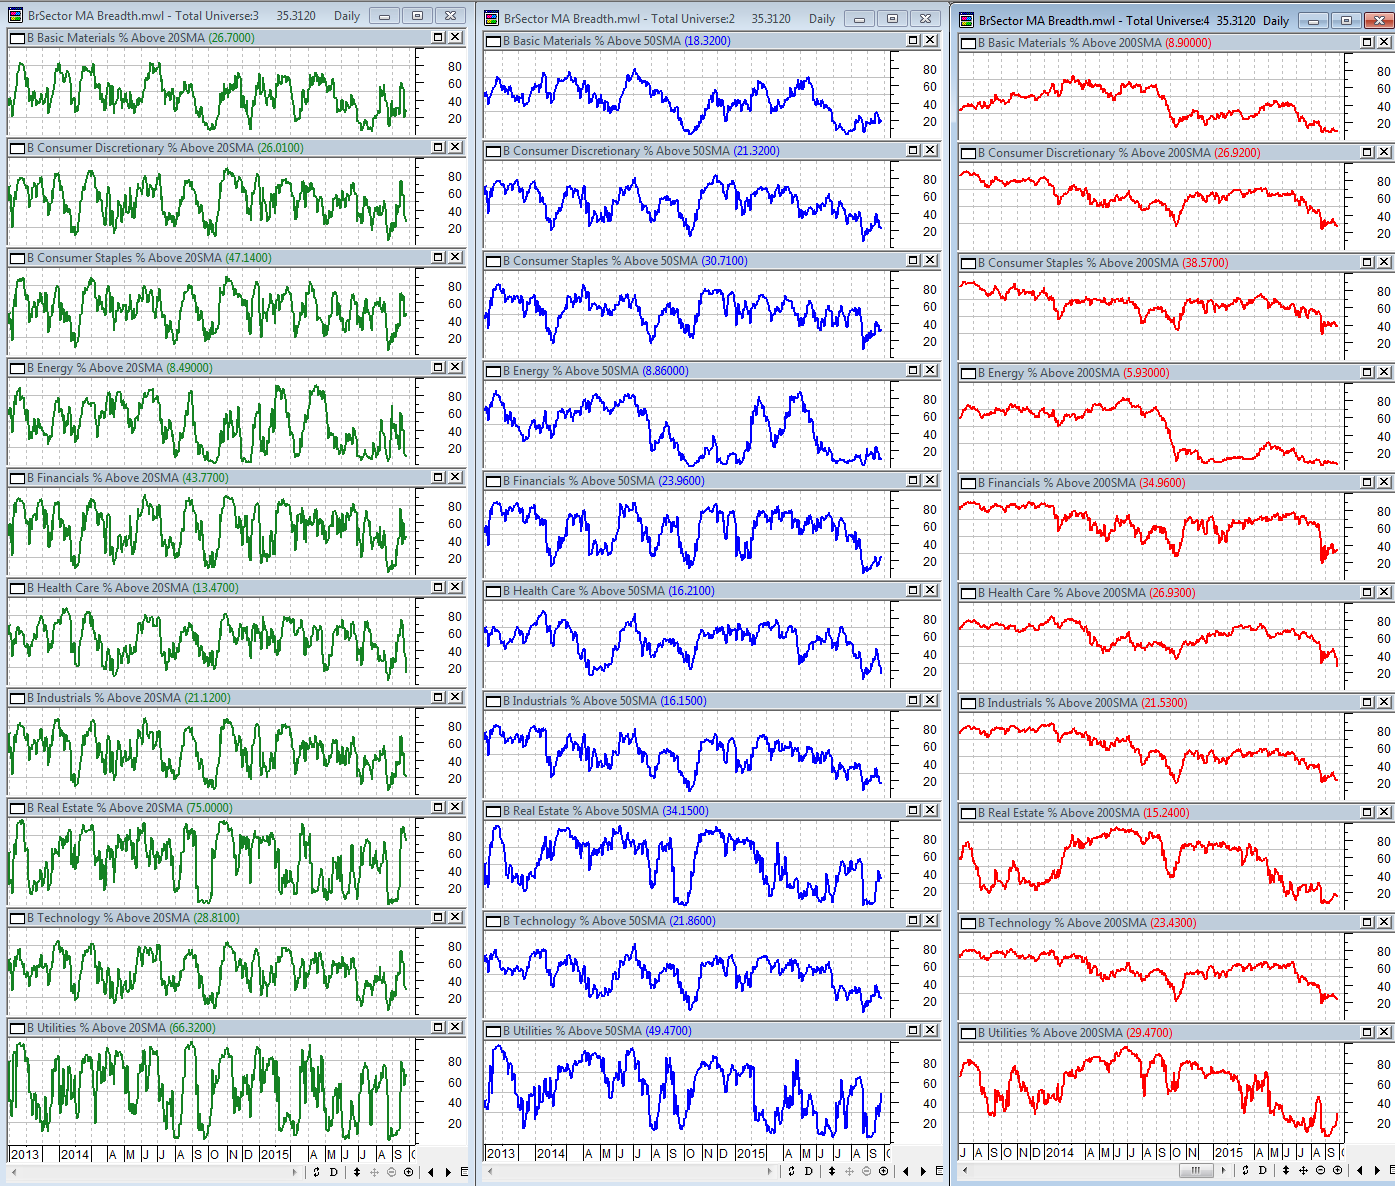 9-25-2015 BSec MA Breadth Dashboard